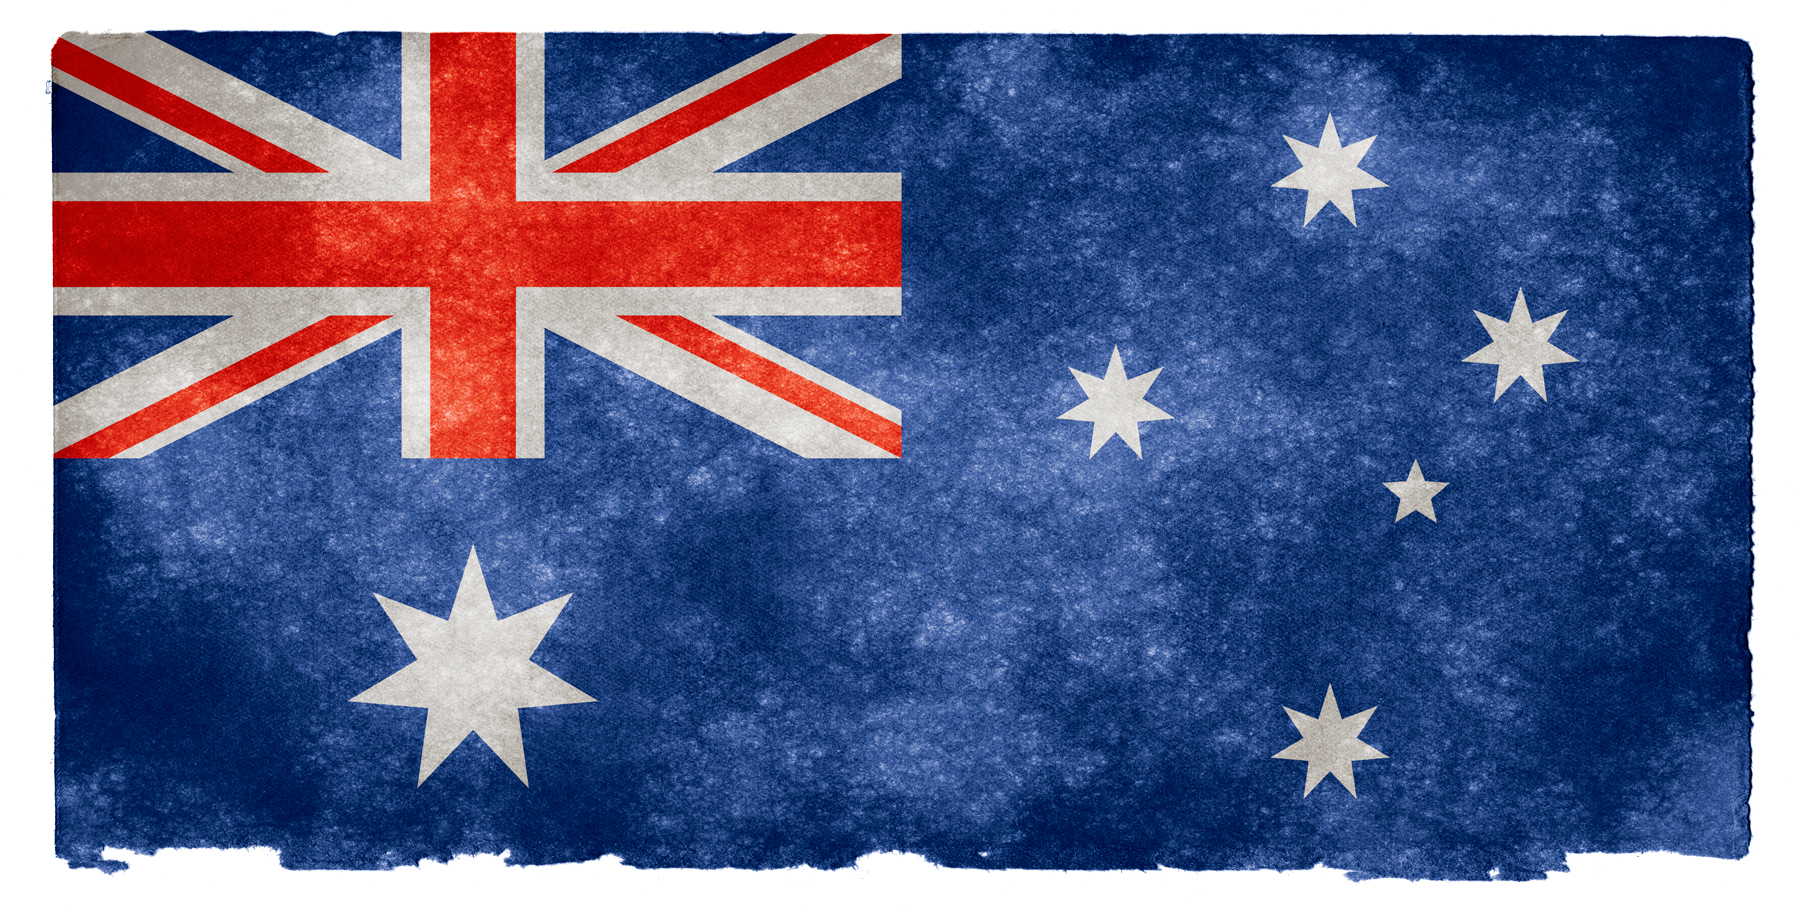 Australia Grunge Flag, Aged, Resource, Nation, National, HQ Photo